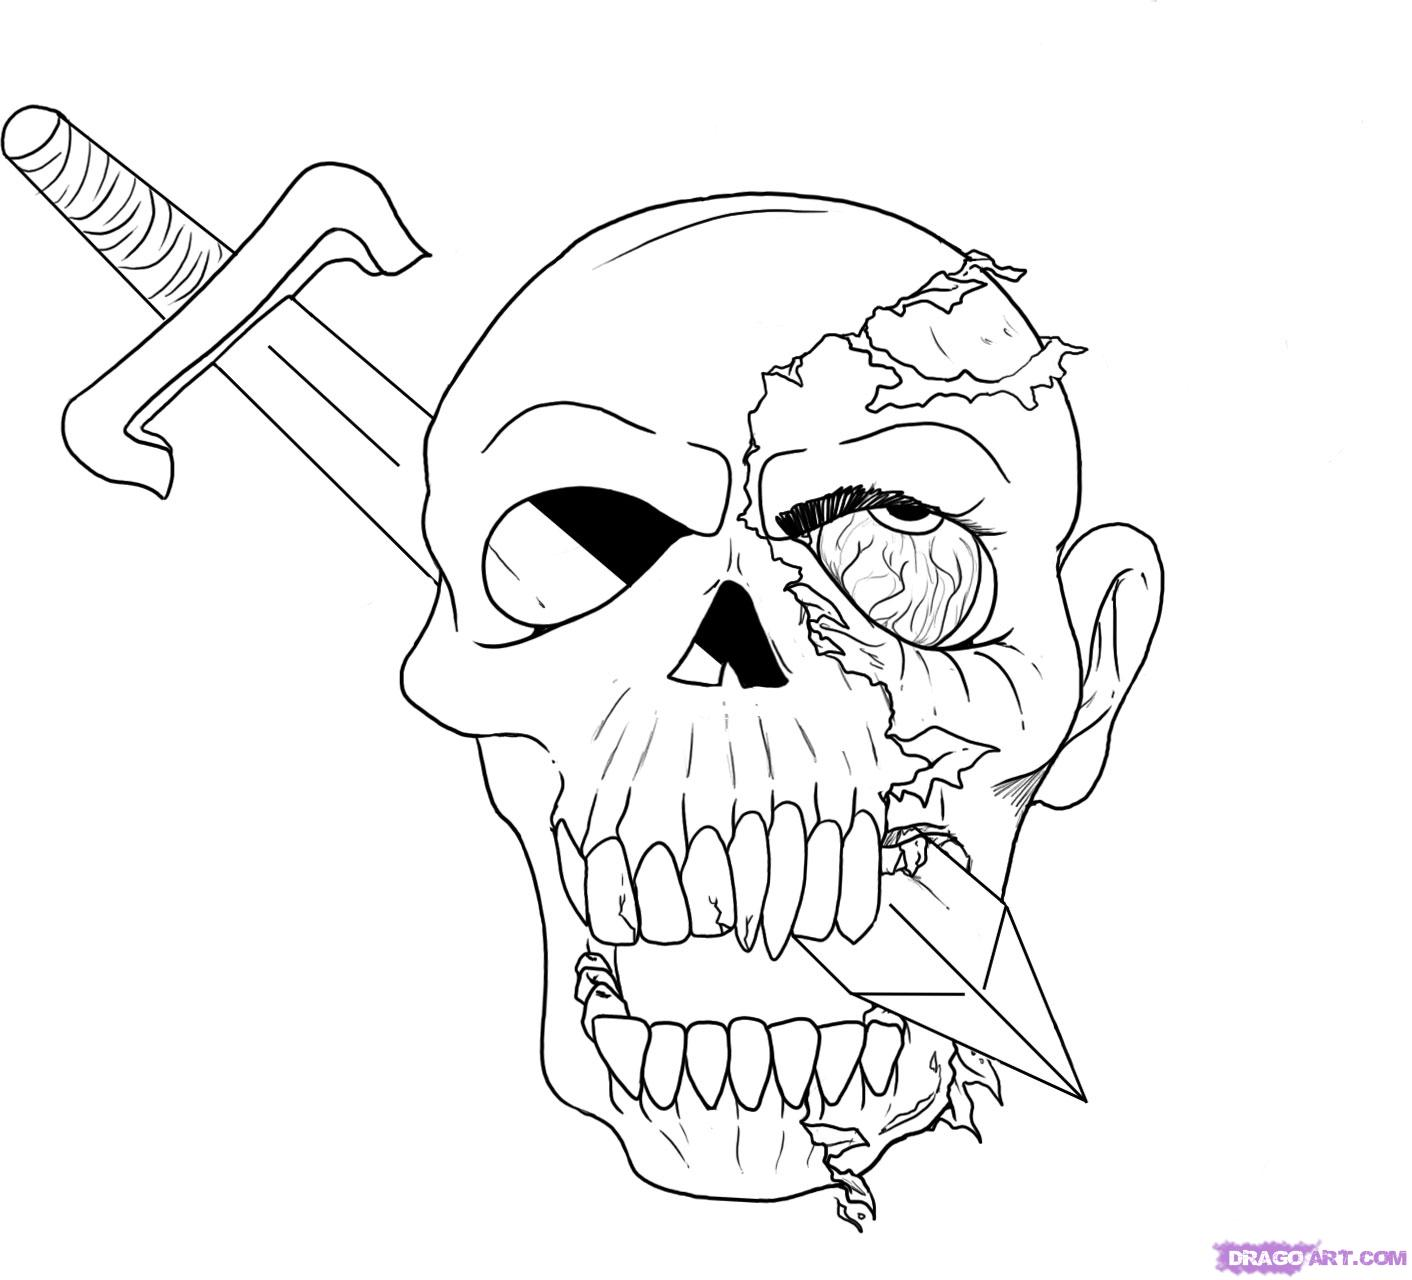 Cartoon skull drawing at getdrawings free for personal use simple steps drawing art blog 1412x1280 drawn knife skull thecheapjerseys Gallery